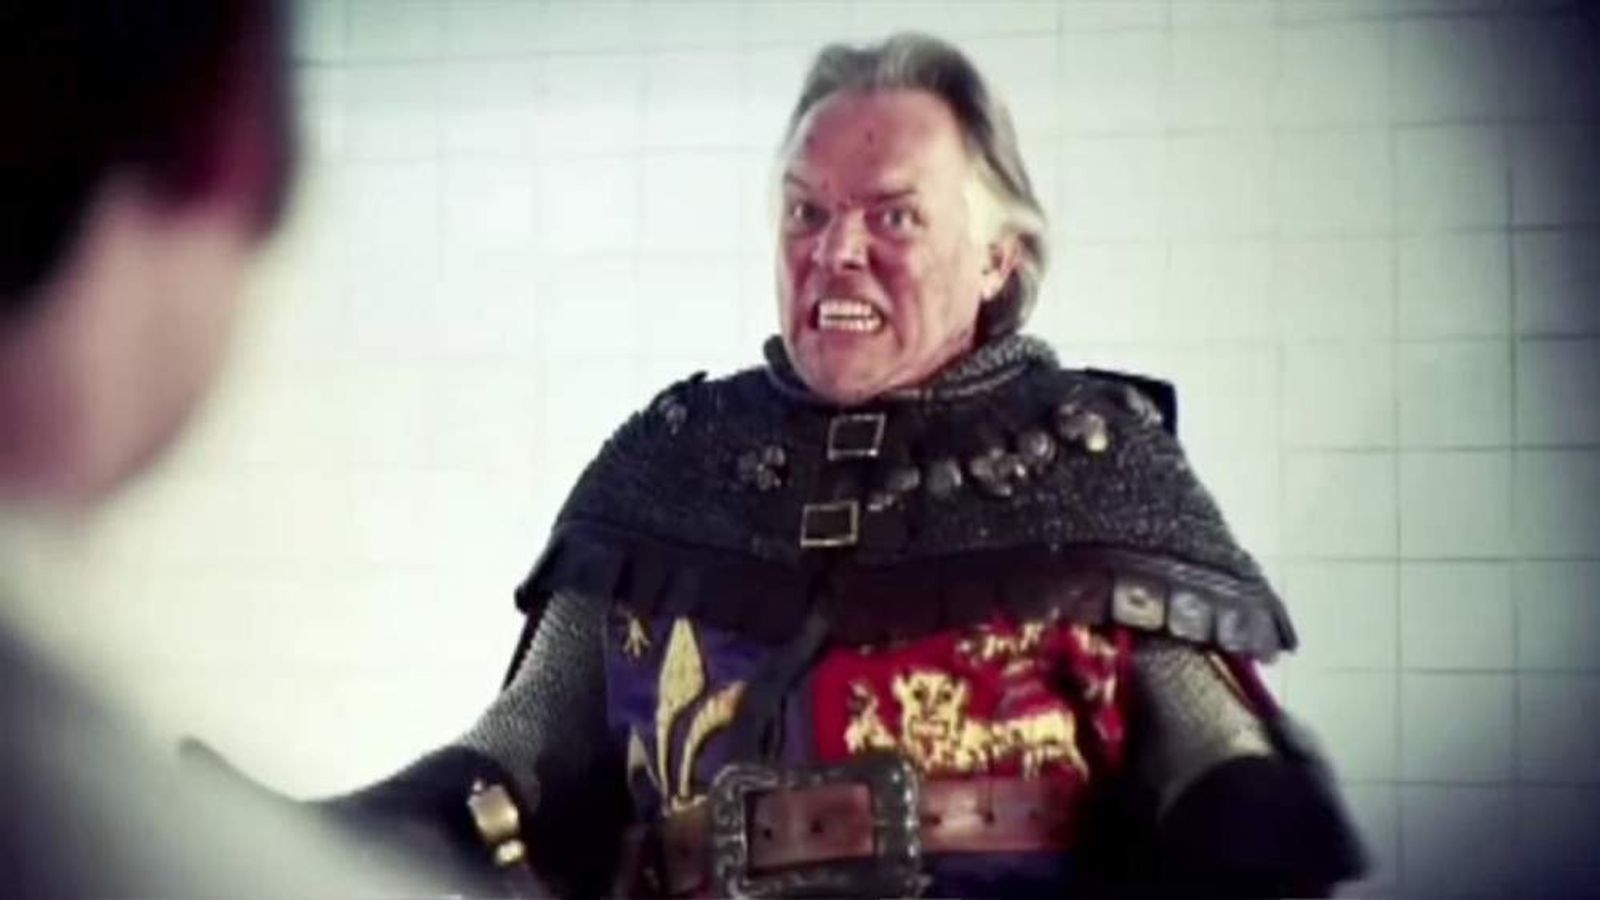 Rik Mayall recorded Noble England in 2010 for the last World Cup